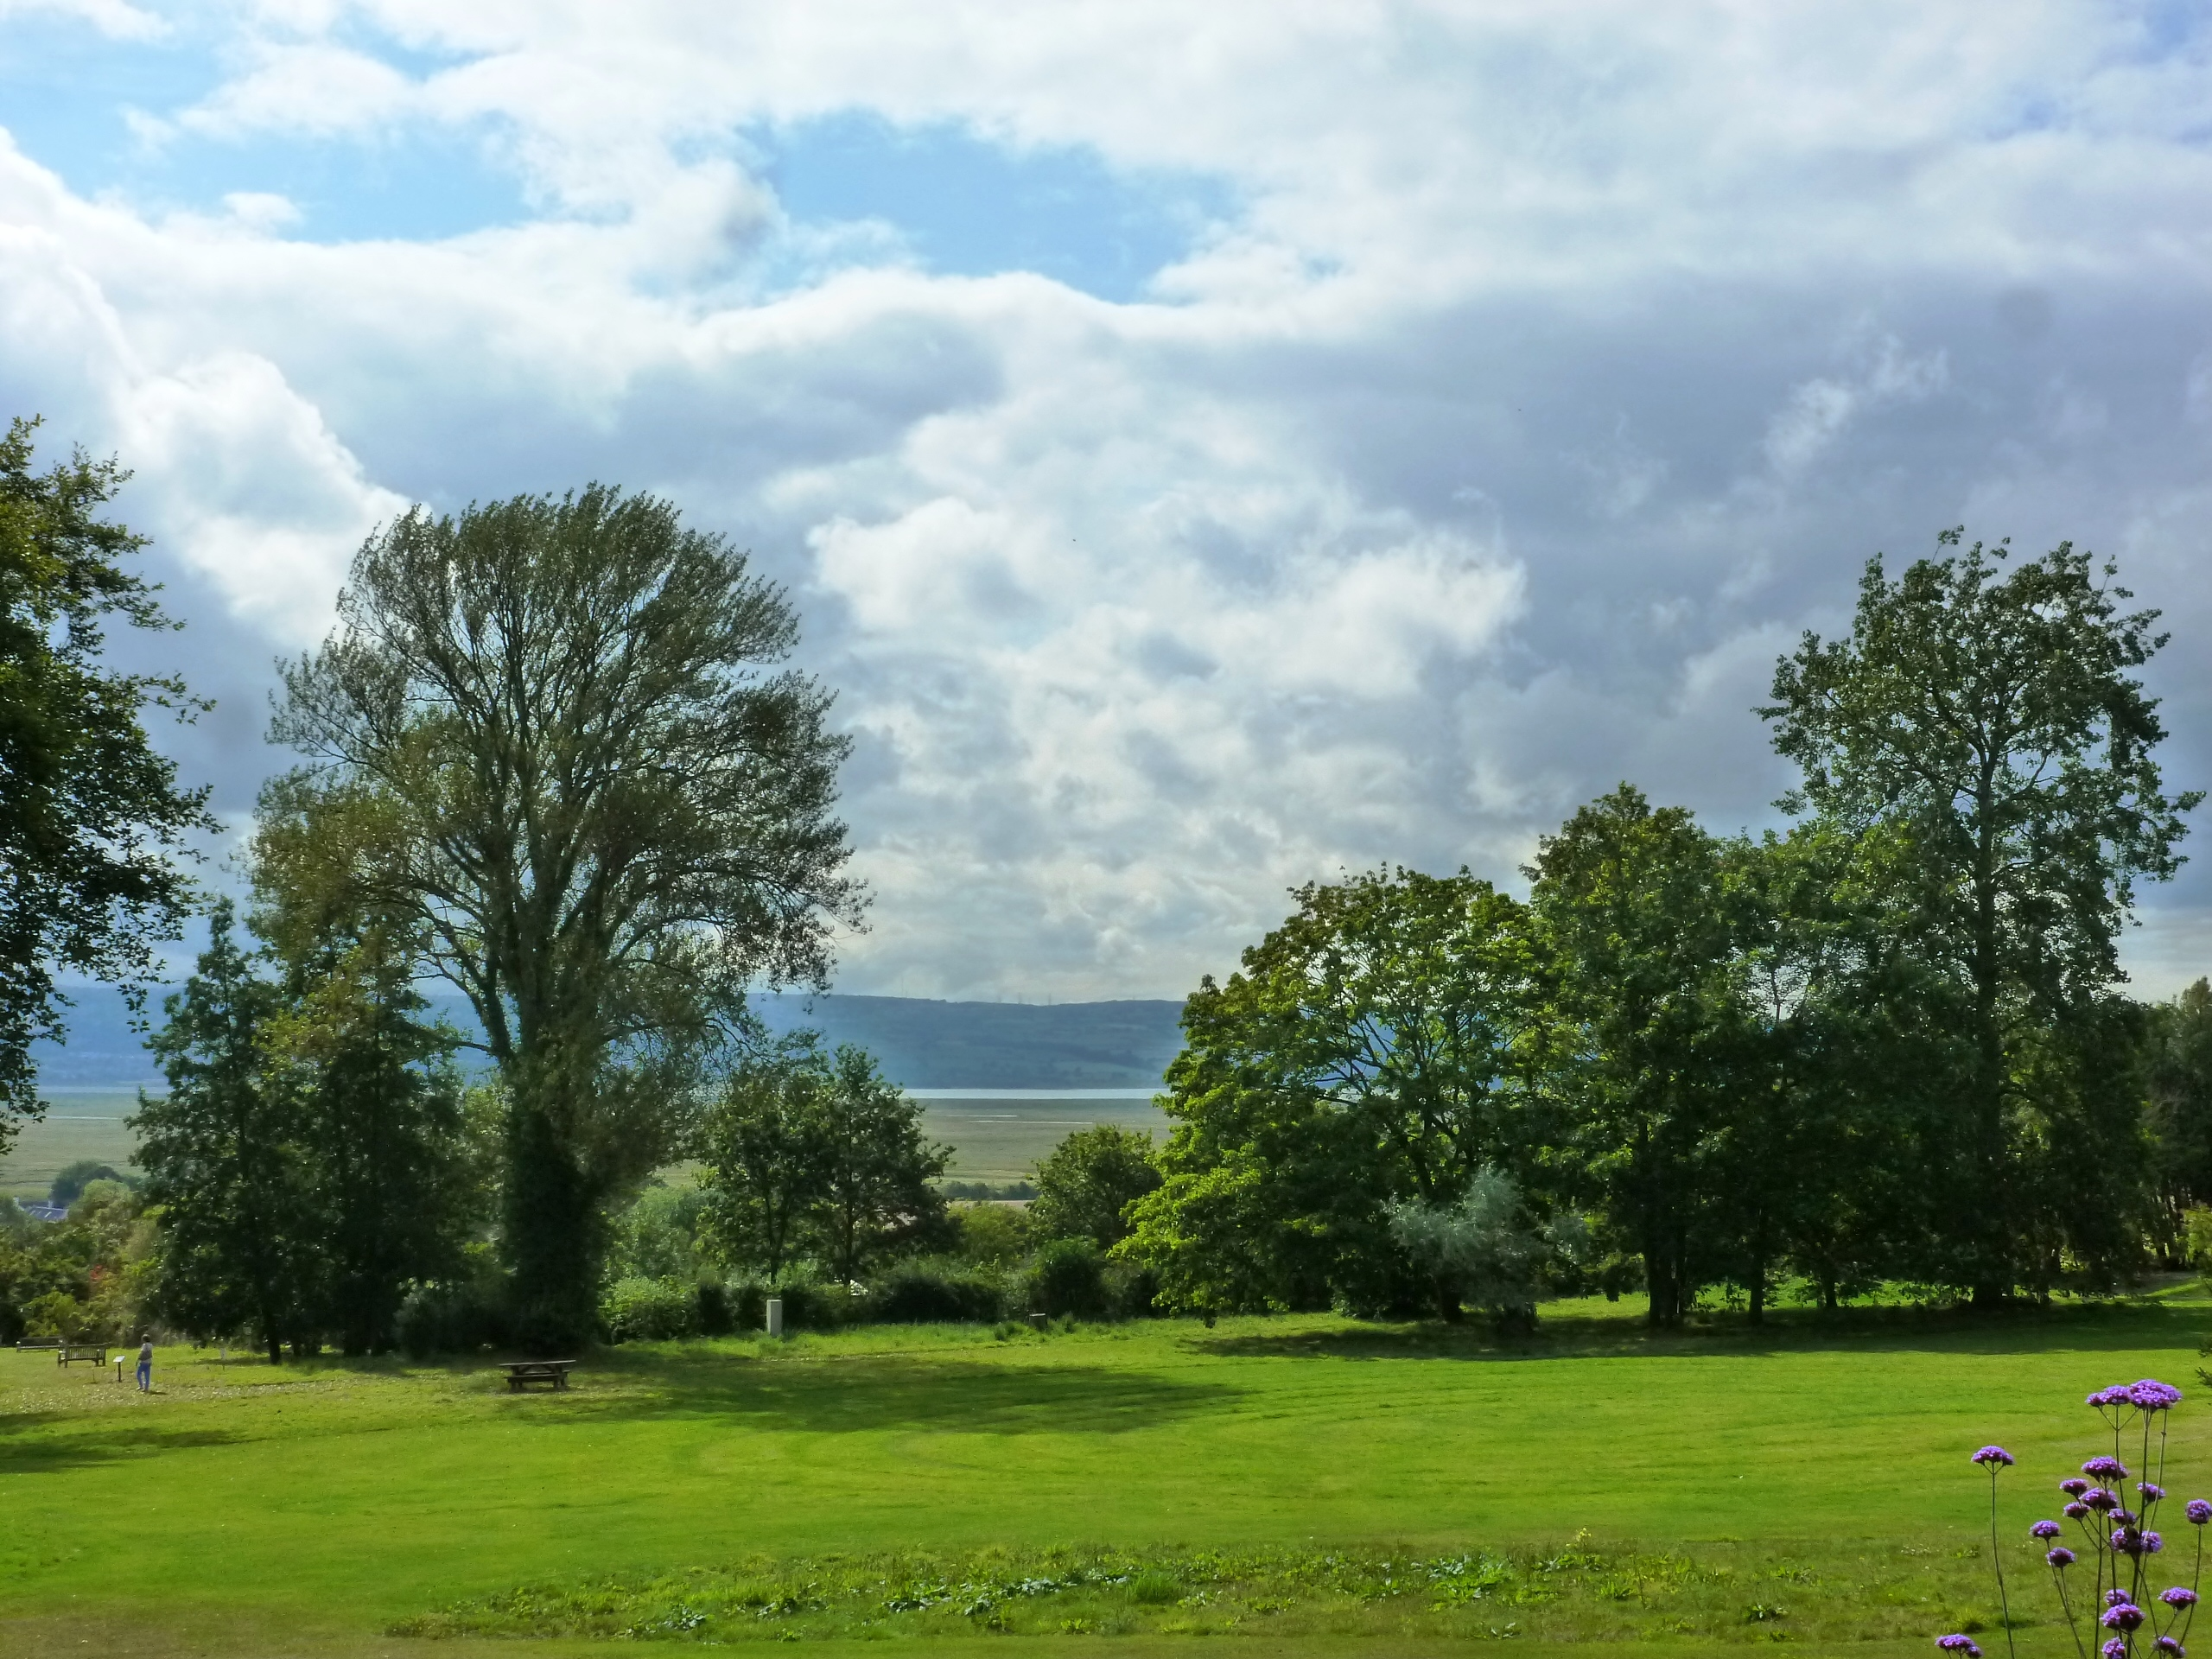 Dee Estuary and Flintshire Hills from Ness Botanic Garden, Wirral, CheshirePG